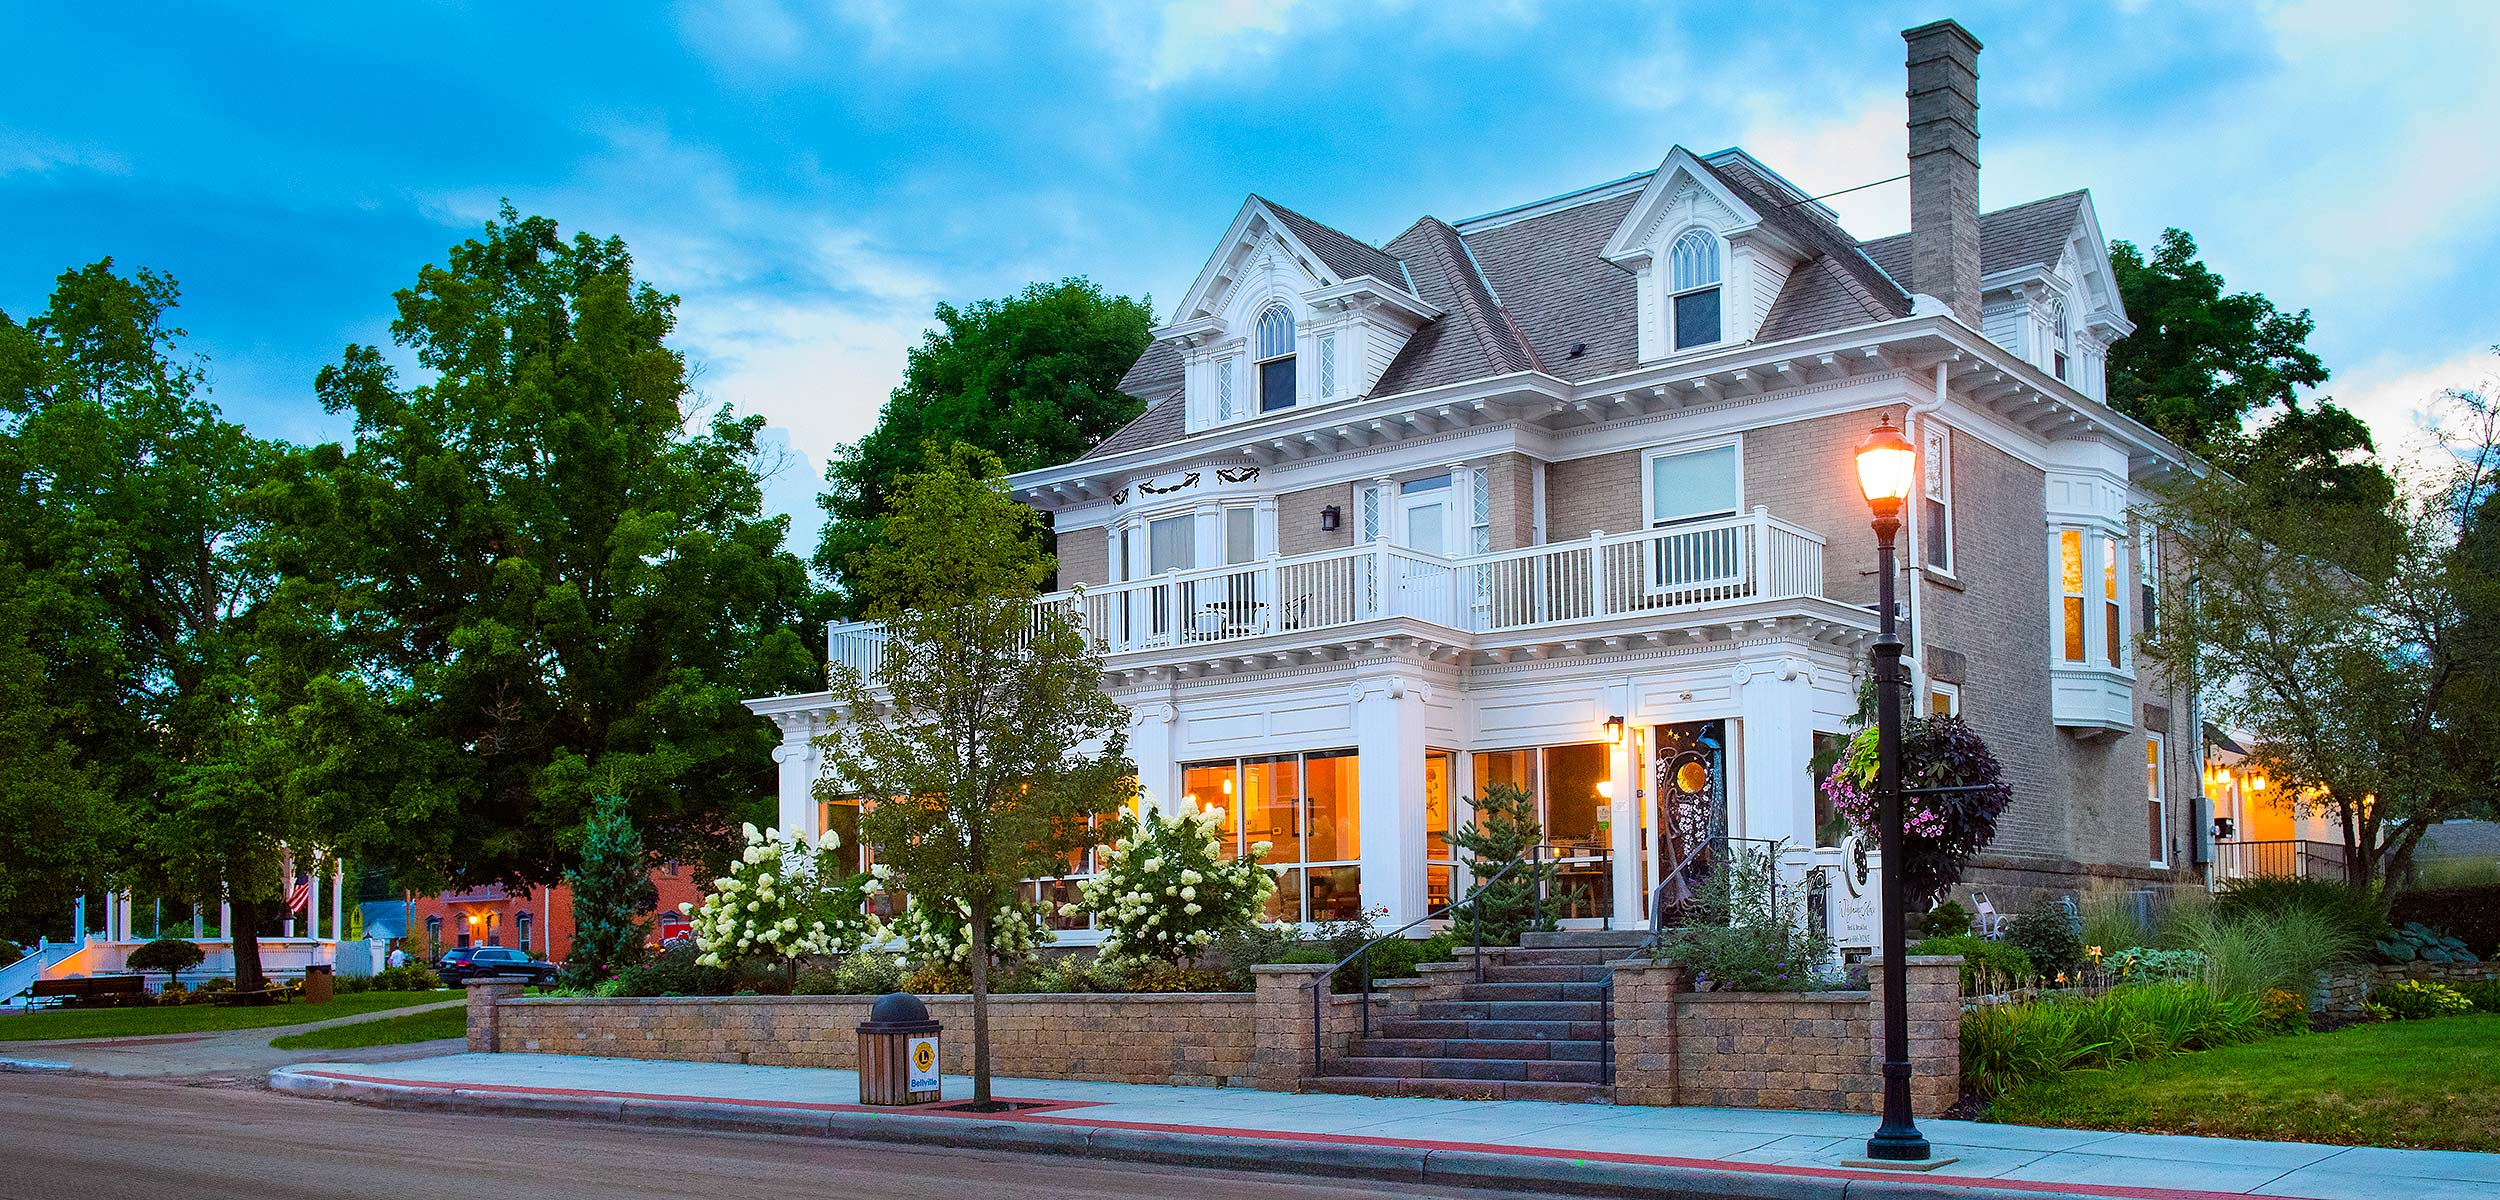 Wishmaker House Bed & Breakfast and Winery and Wine Bar in Bellville, Ohio